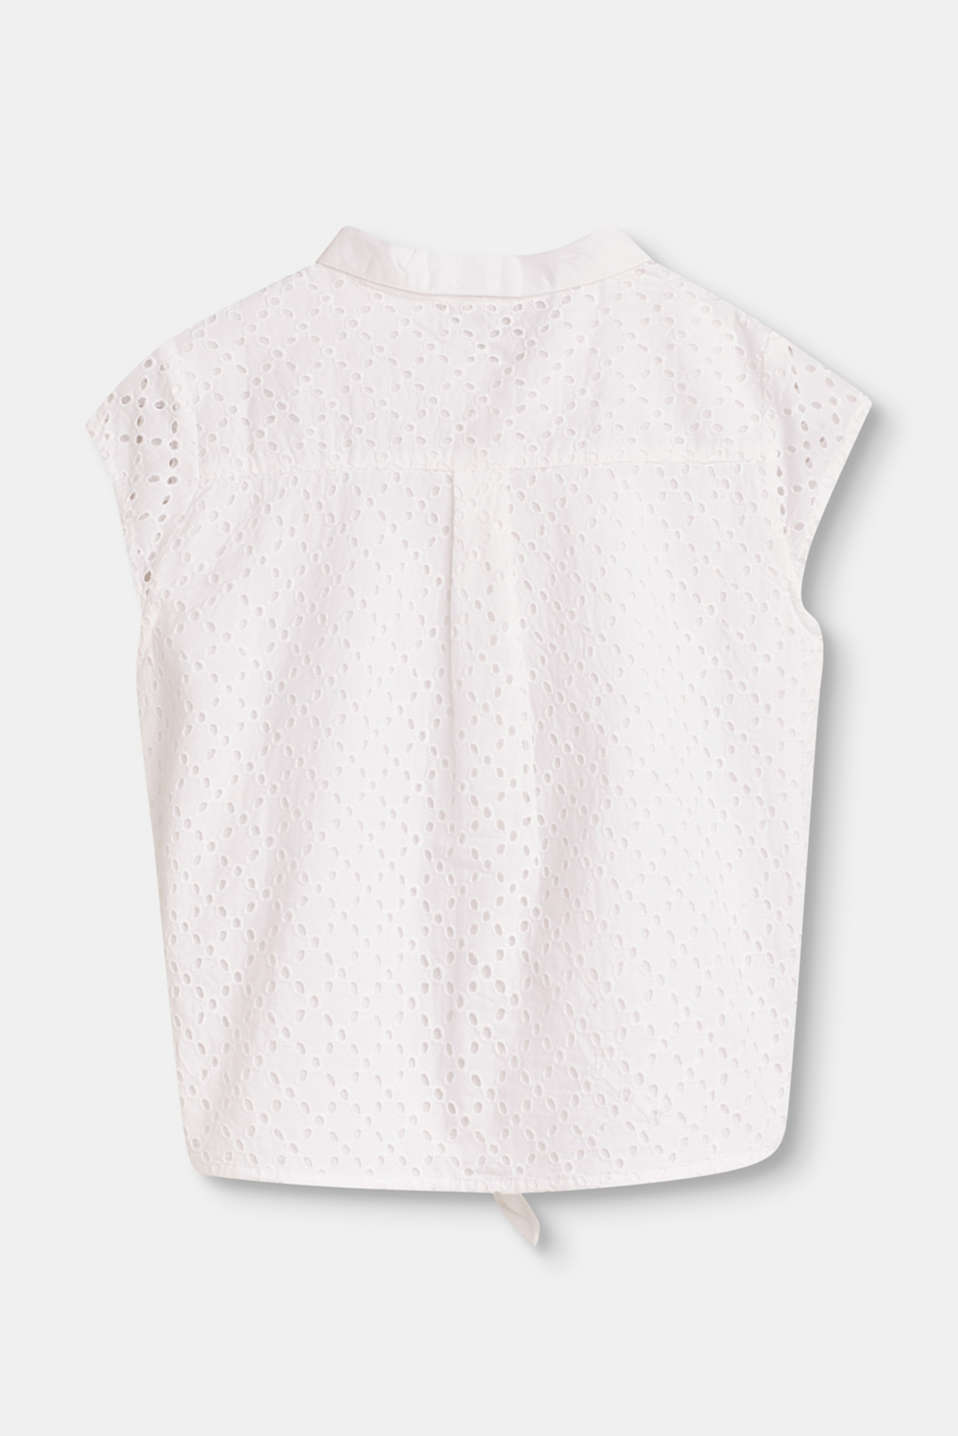 Cotton blouse designed for tying in a knot with broderie anglaise